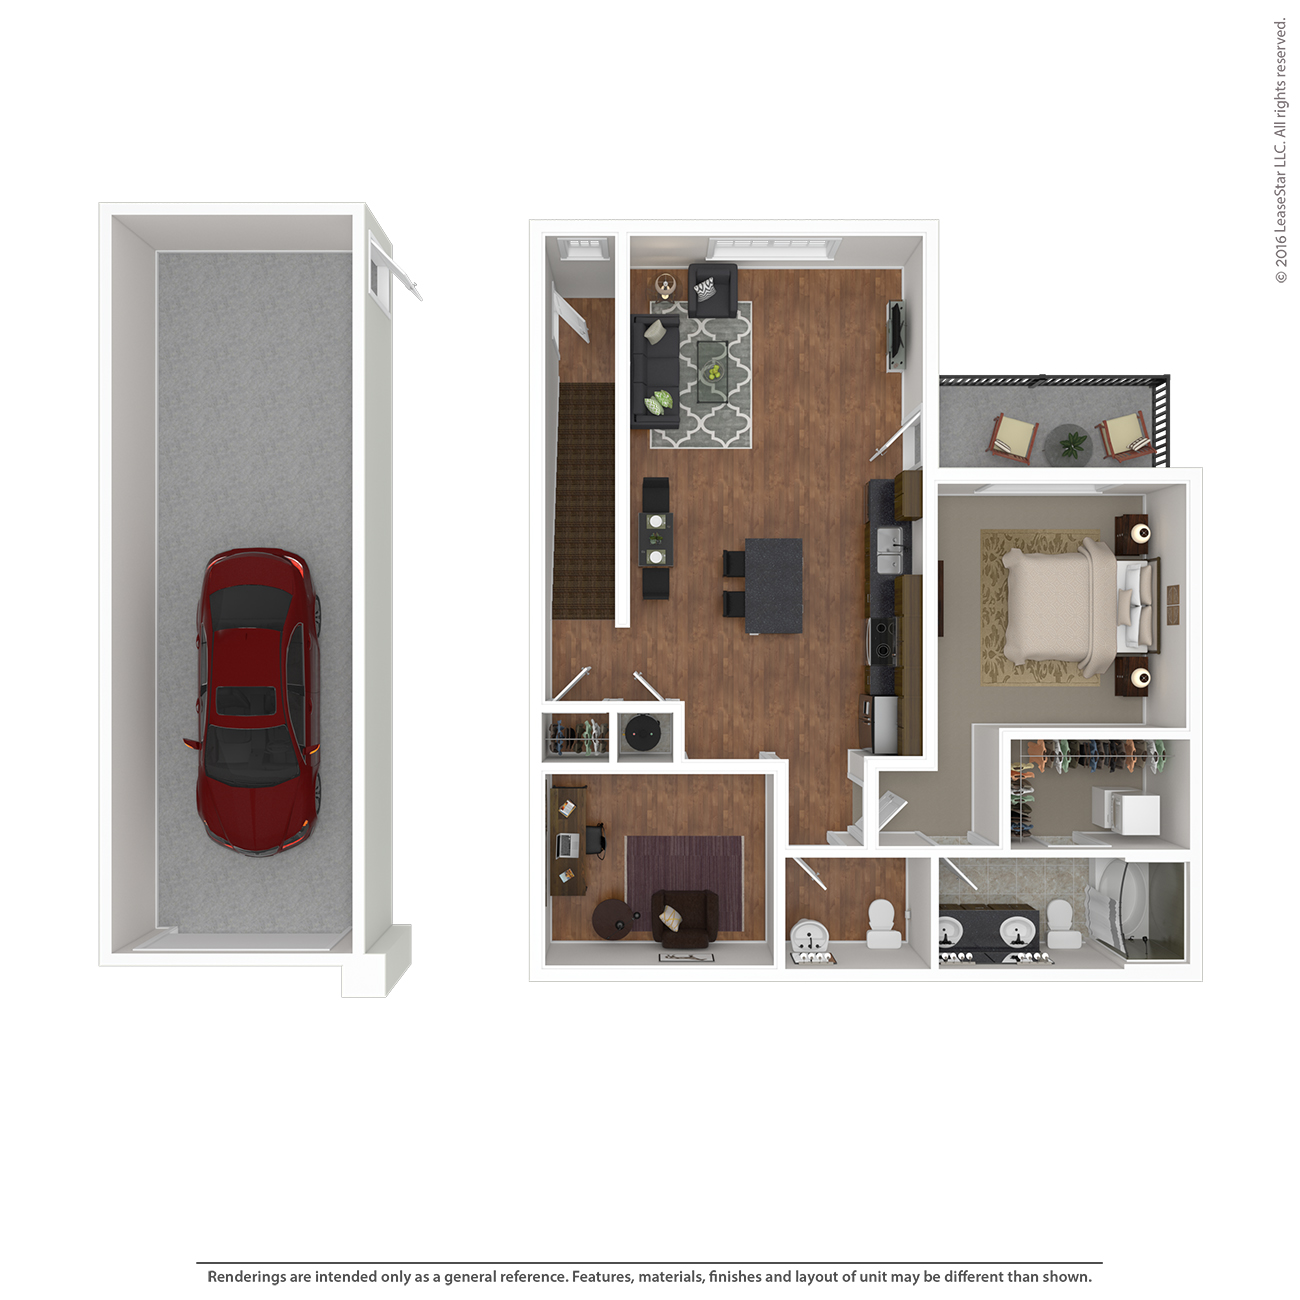 Savannah West - Floorplan - B1